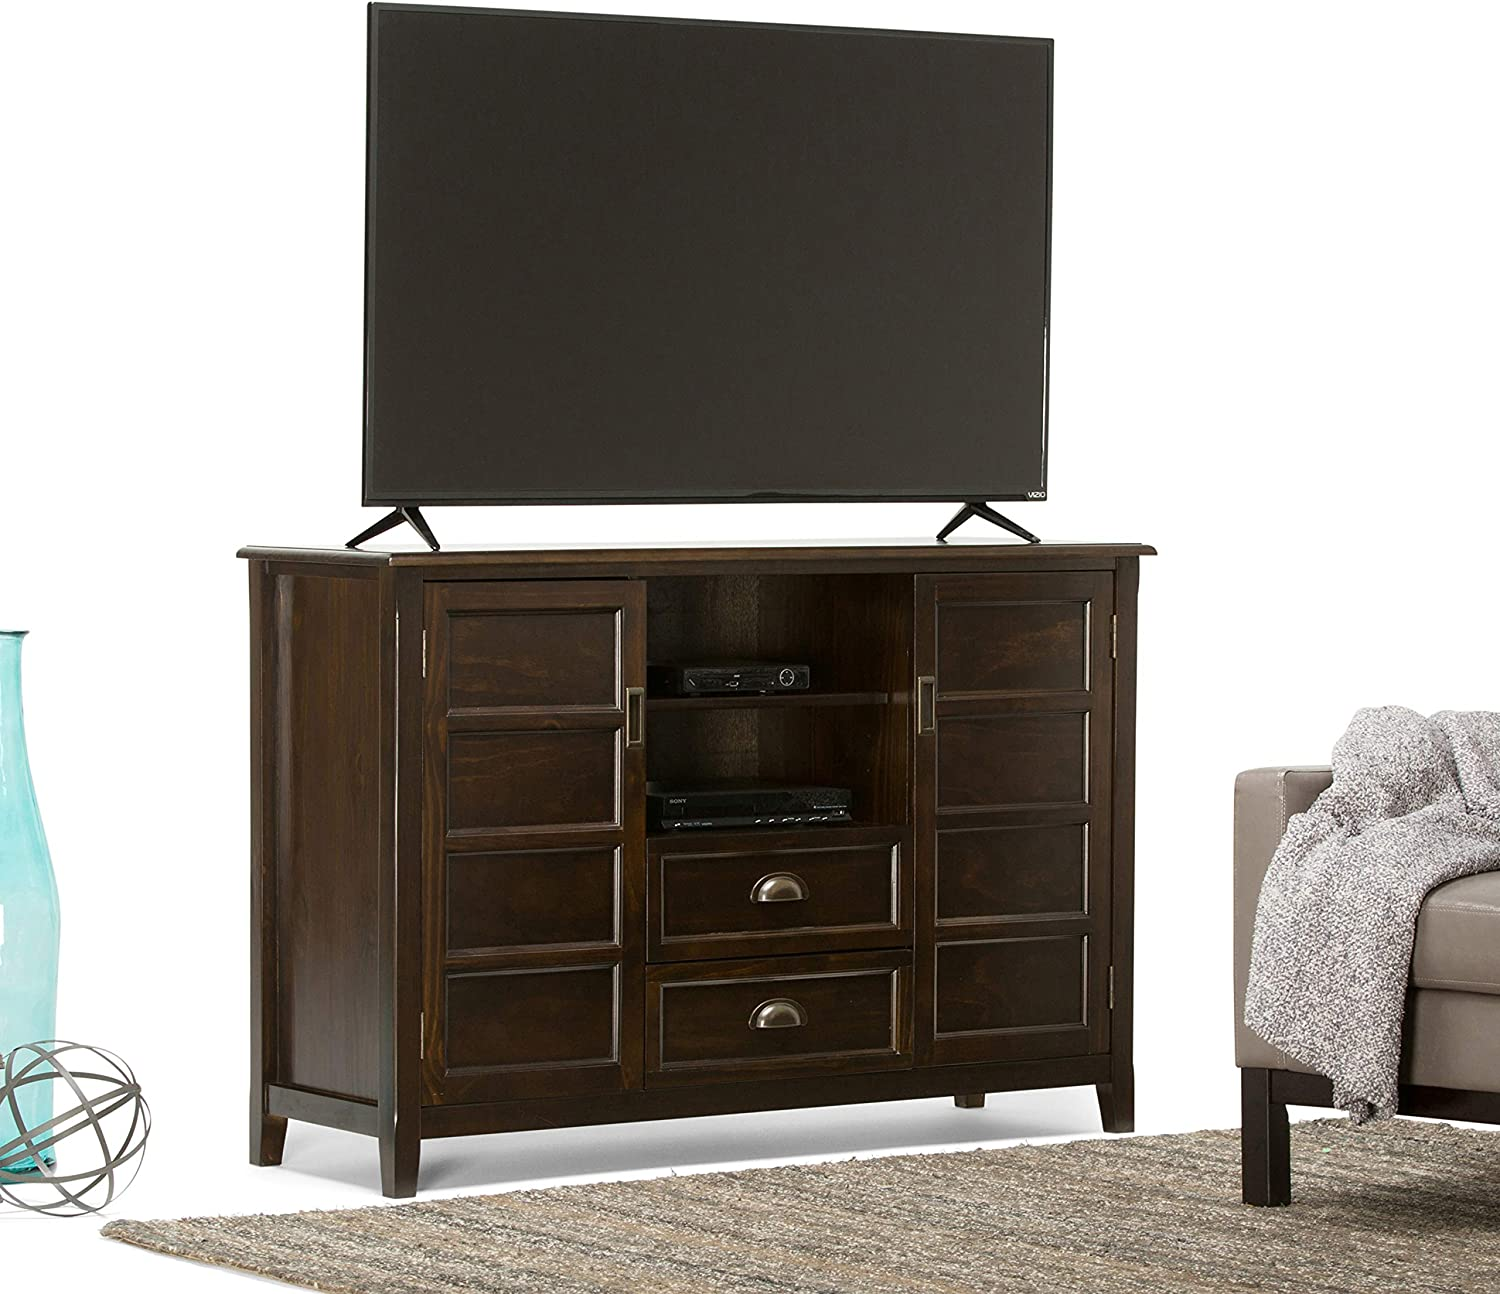 Simpli Home Burlington SOLID WOOD Universal Tall TV Media Stand, 54 inch Wide, Traditional, Storage Shelves and Cabinetsfor Flat Screen TVs up to 60 inches Espresso Brown